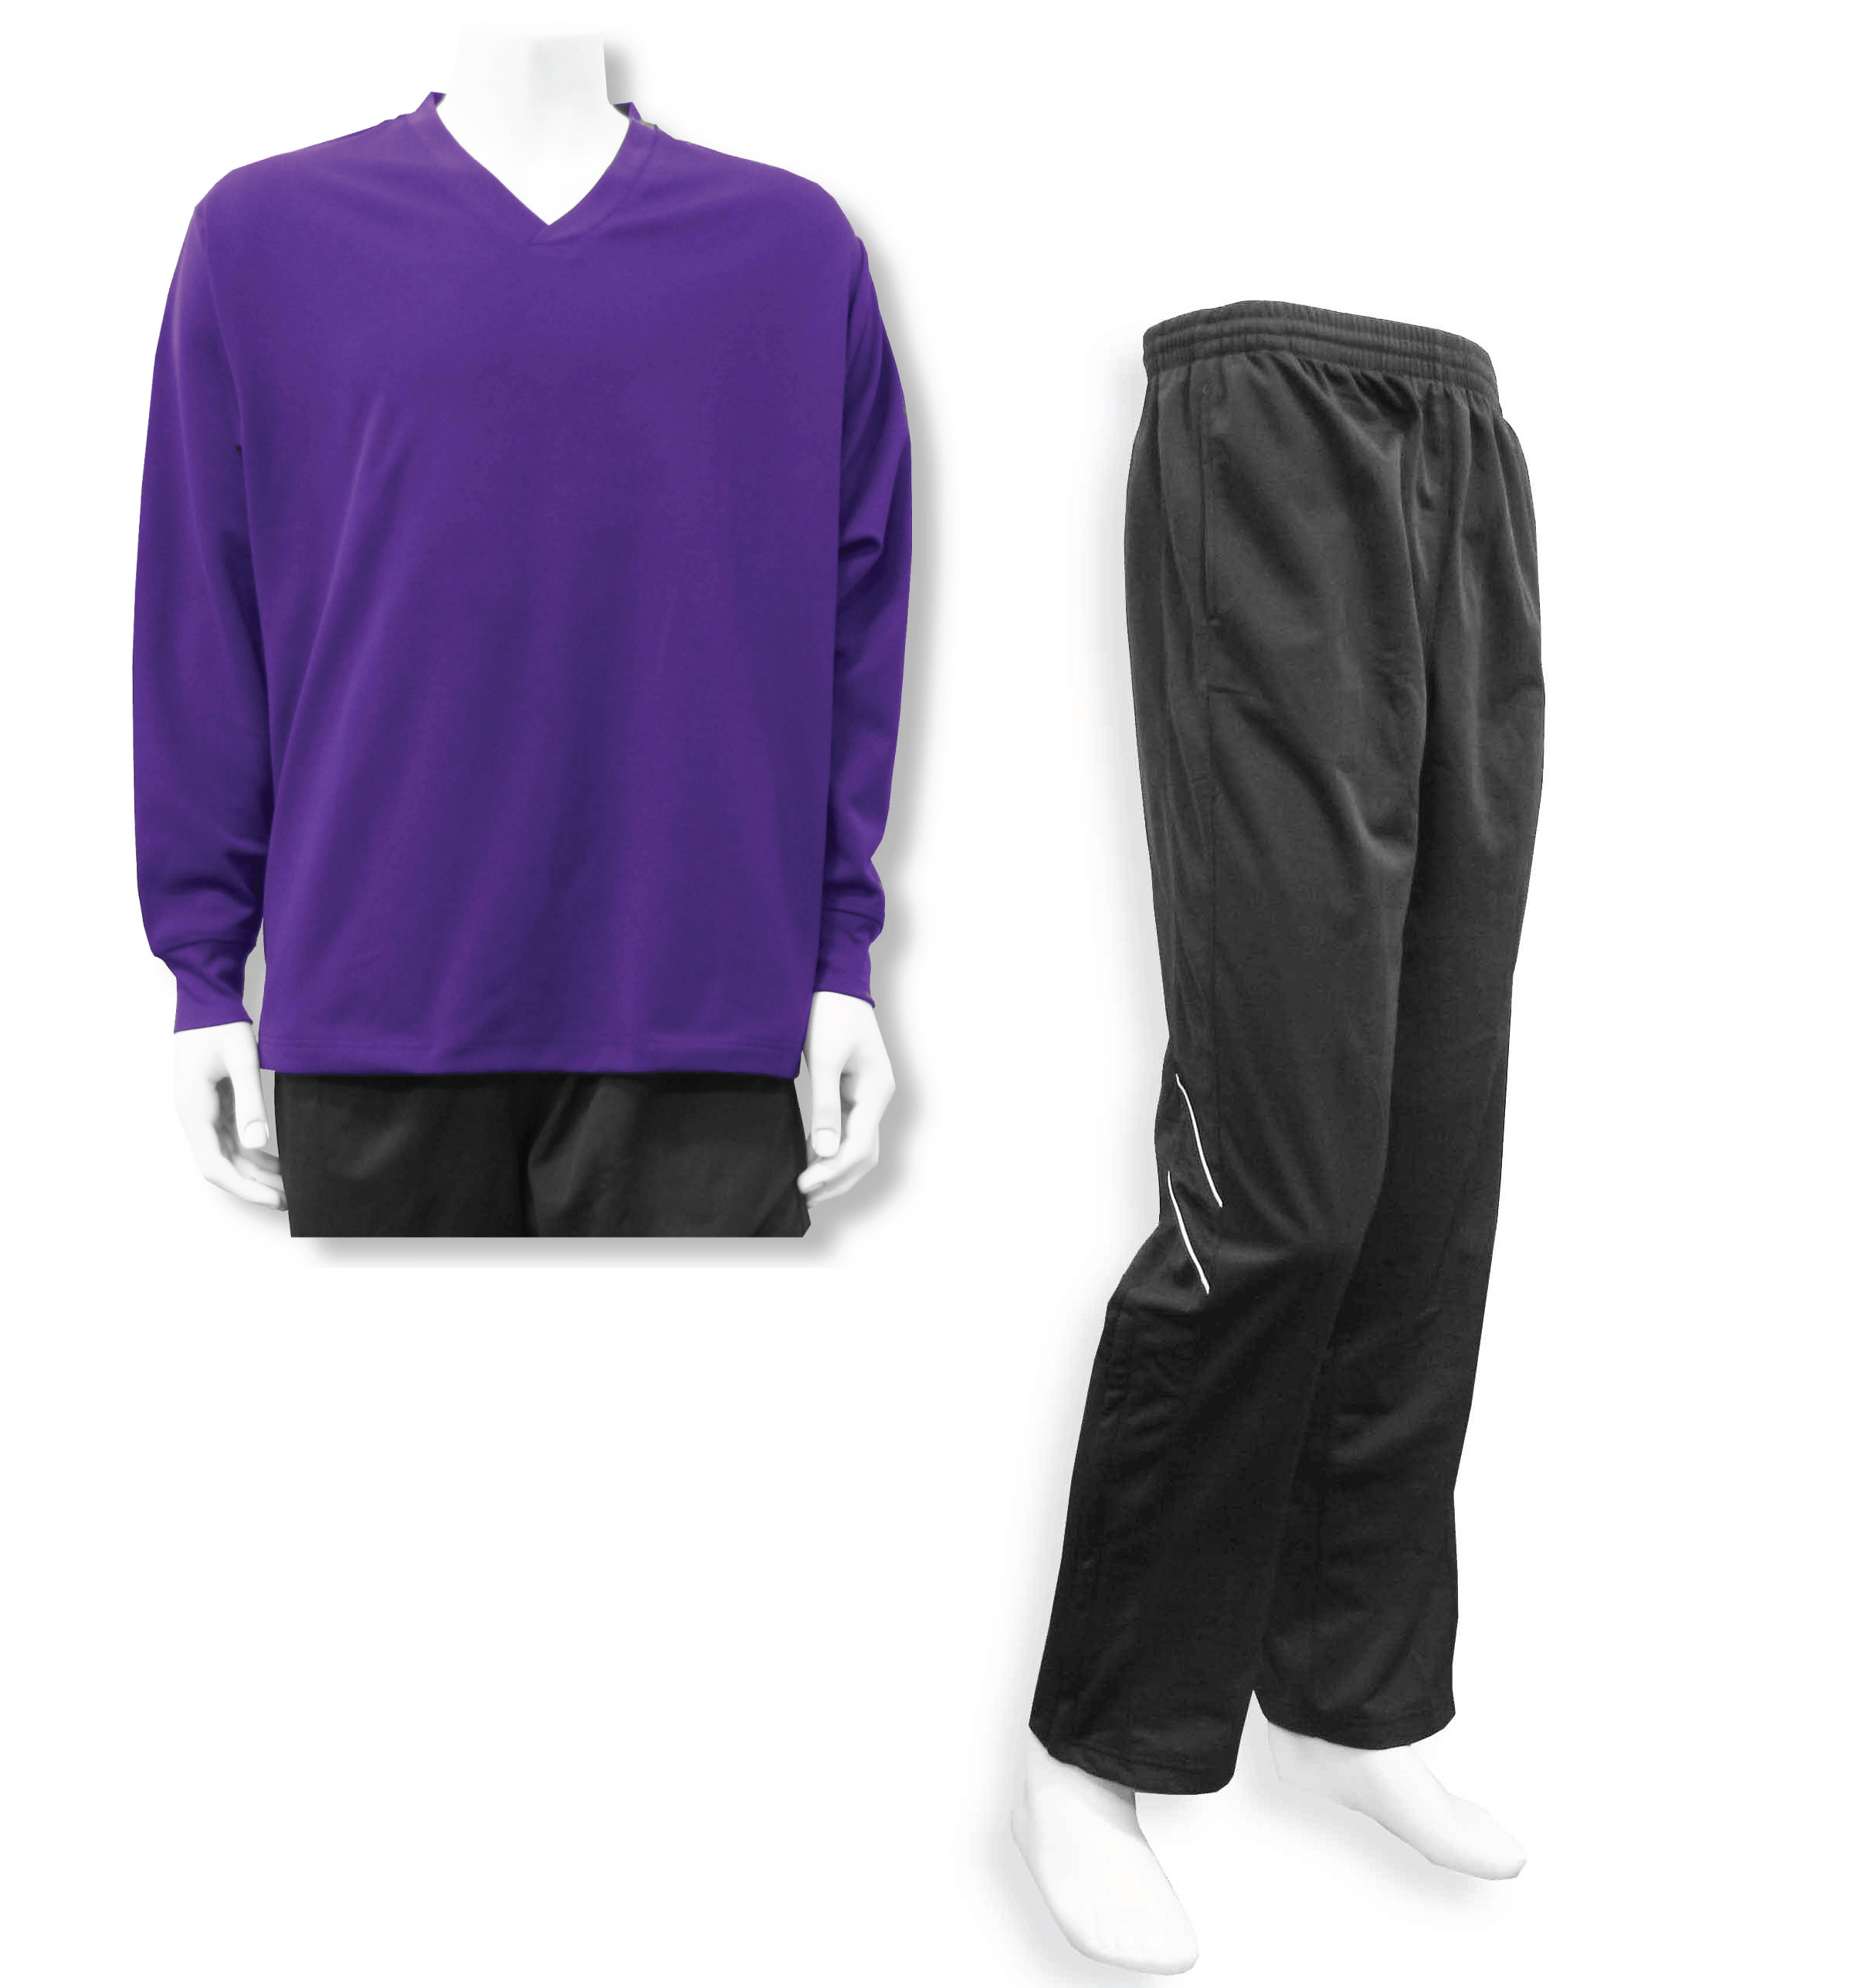 Men's casual track suit by Code Four Athletics in purple / black